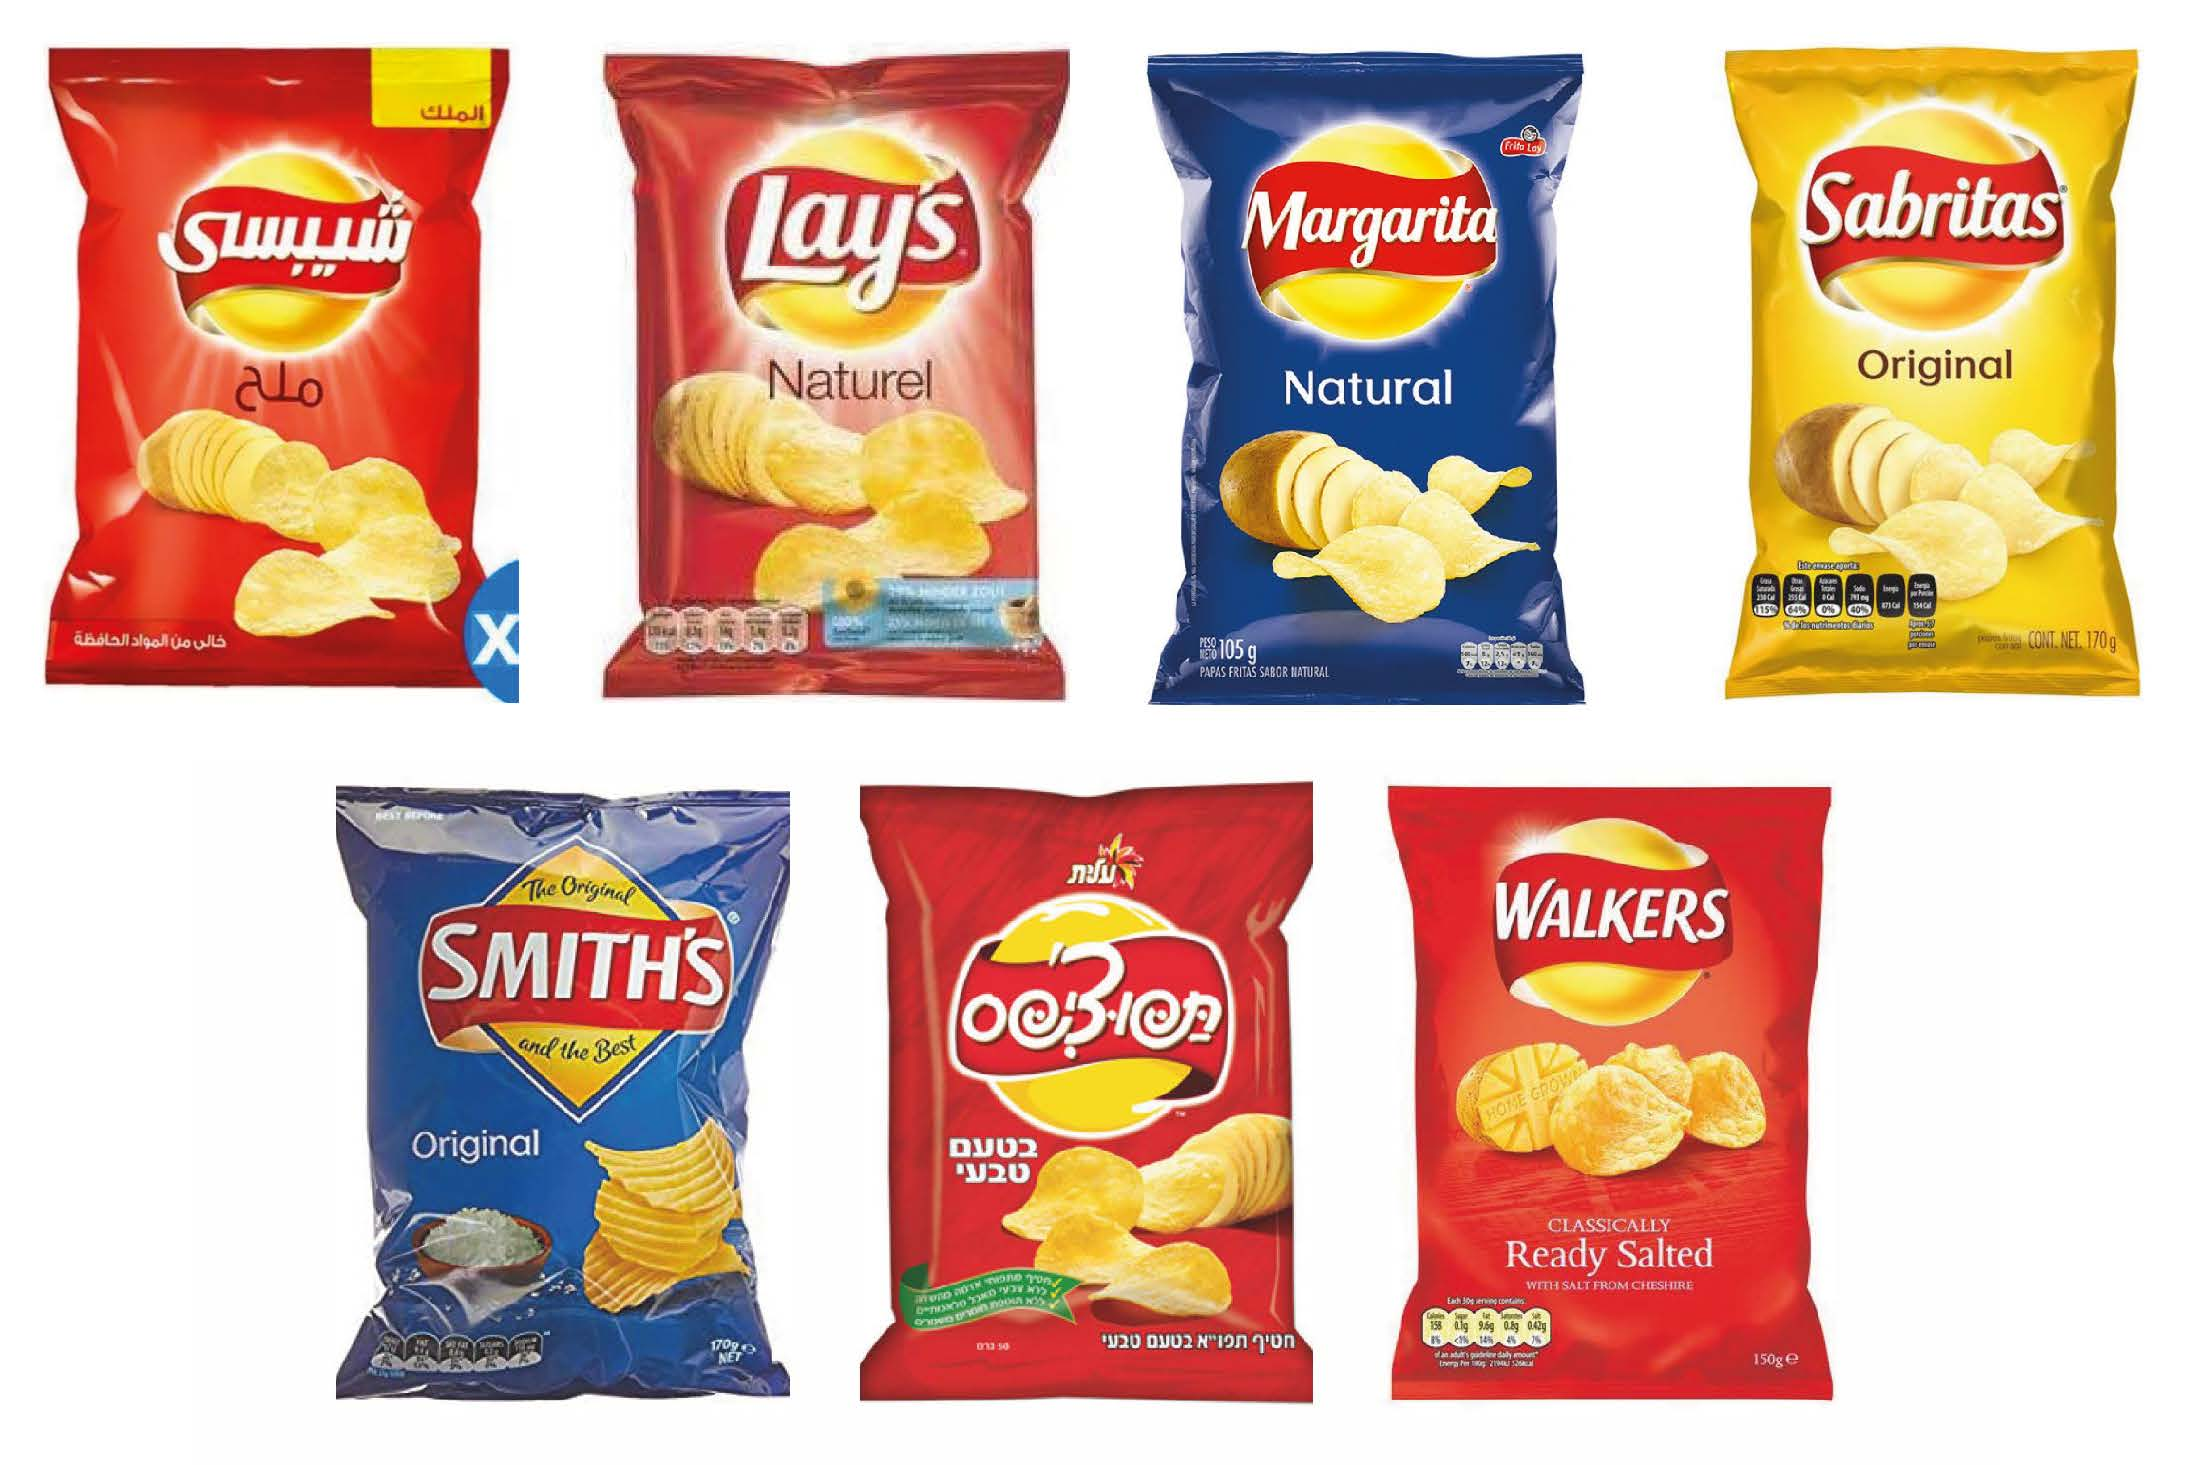 Lay's crisps and its sister brands